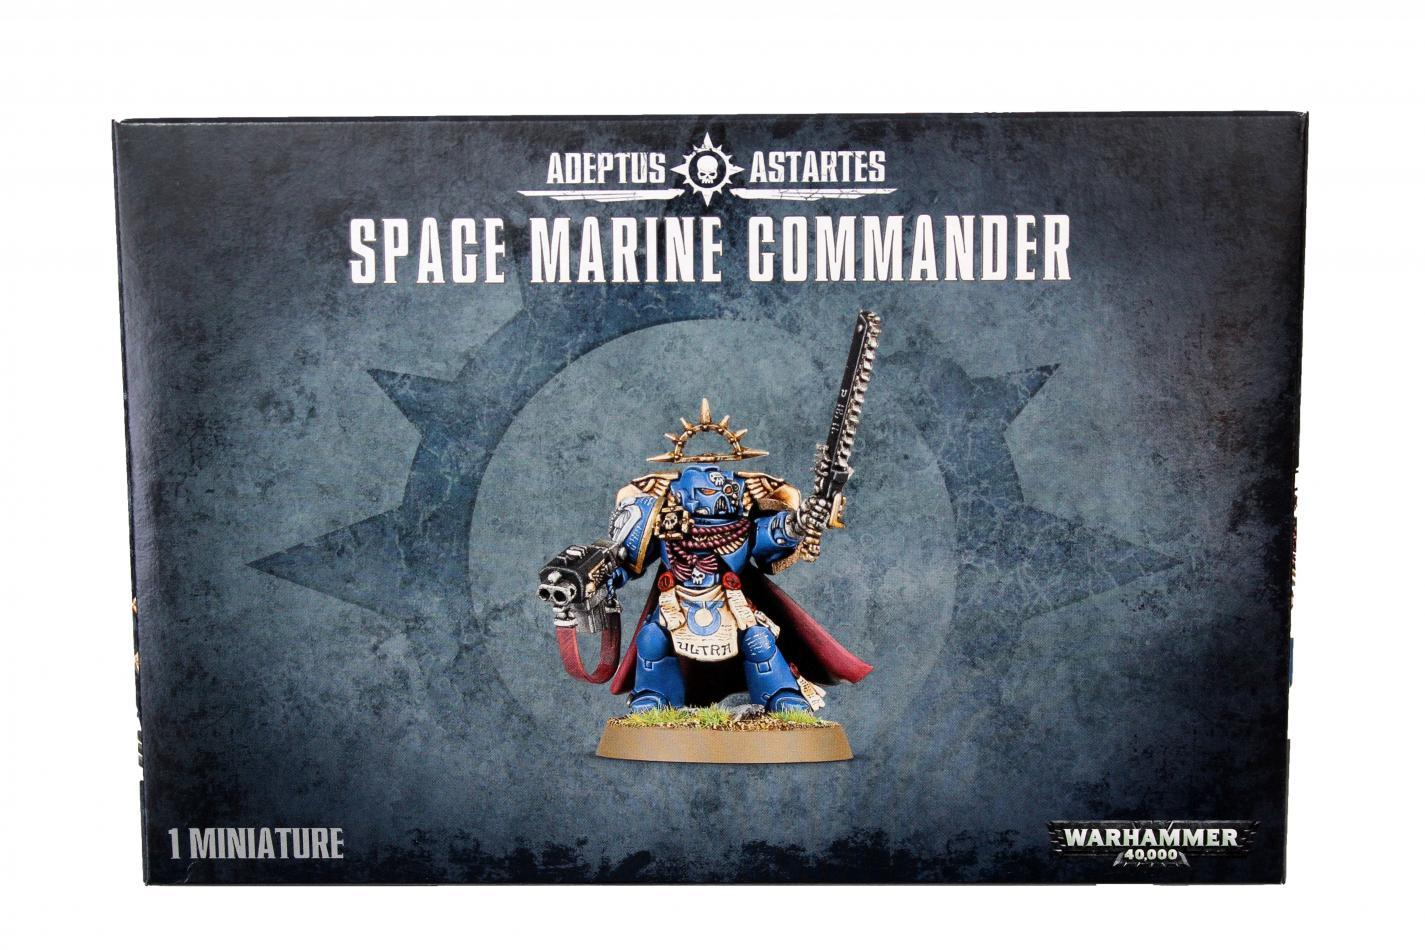 Space Marine Commander